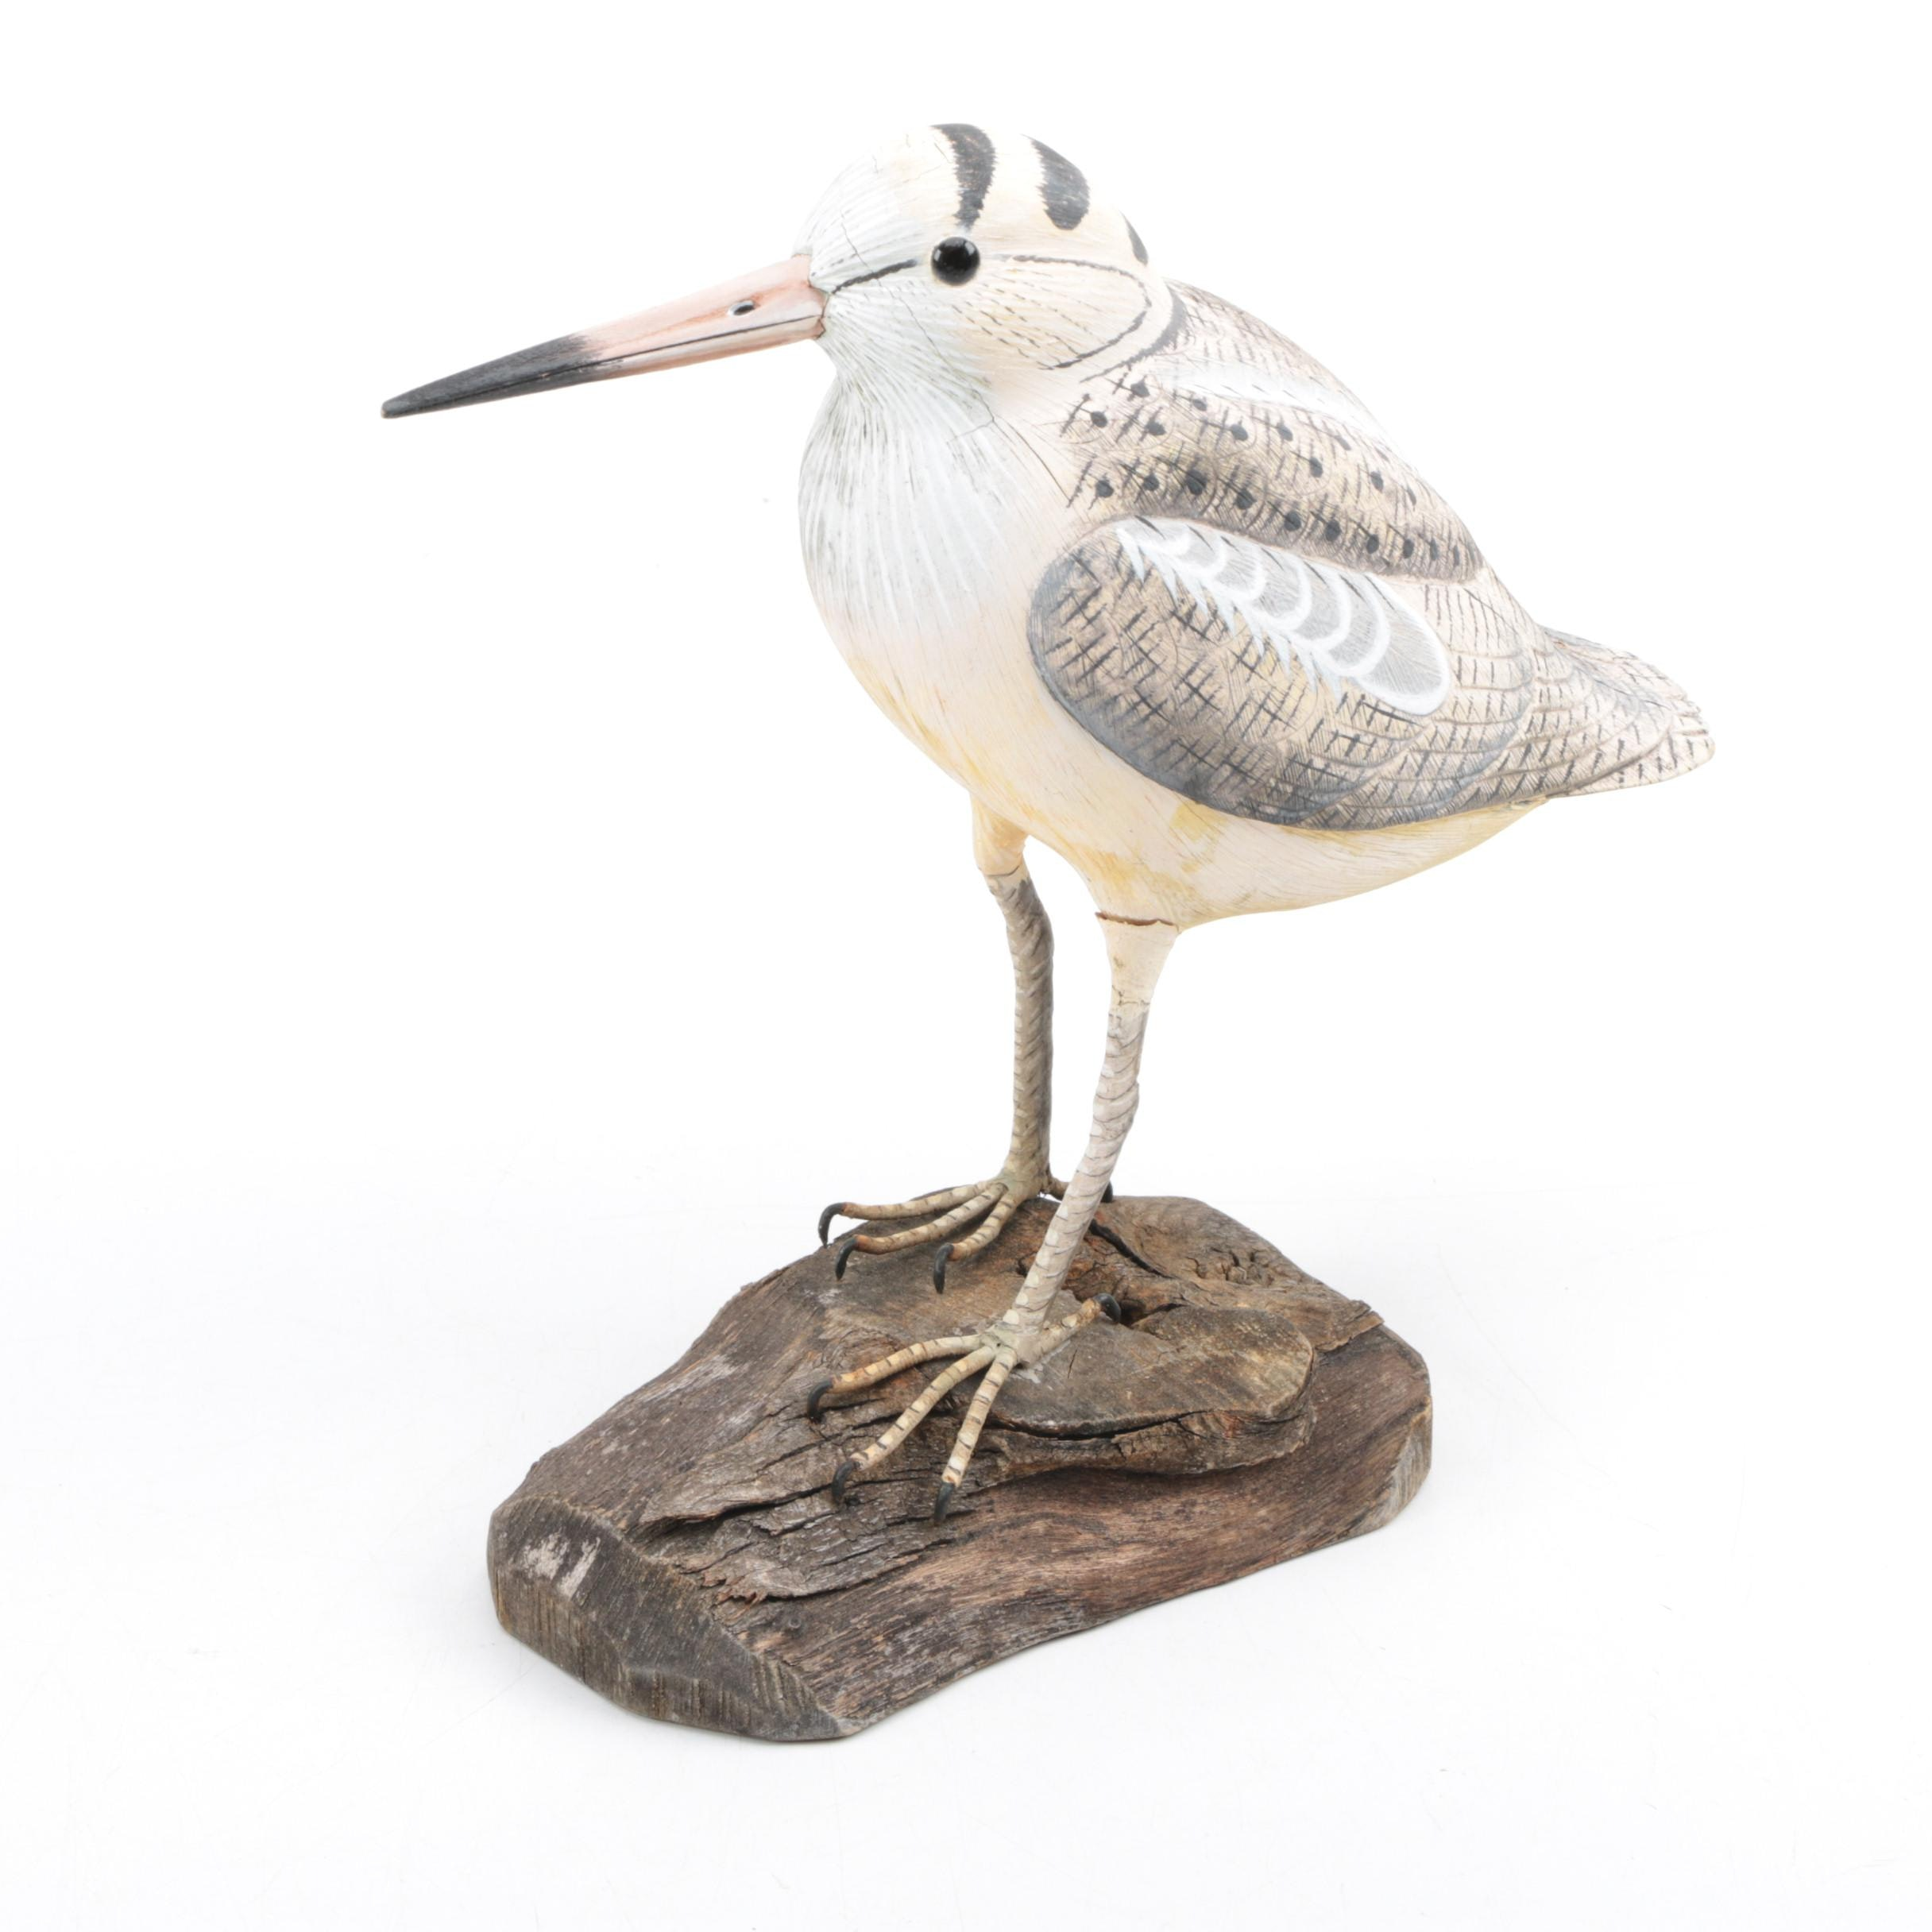 Carved Wooden American Woodcock Figurine